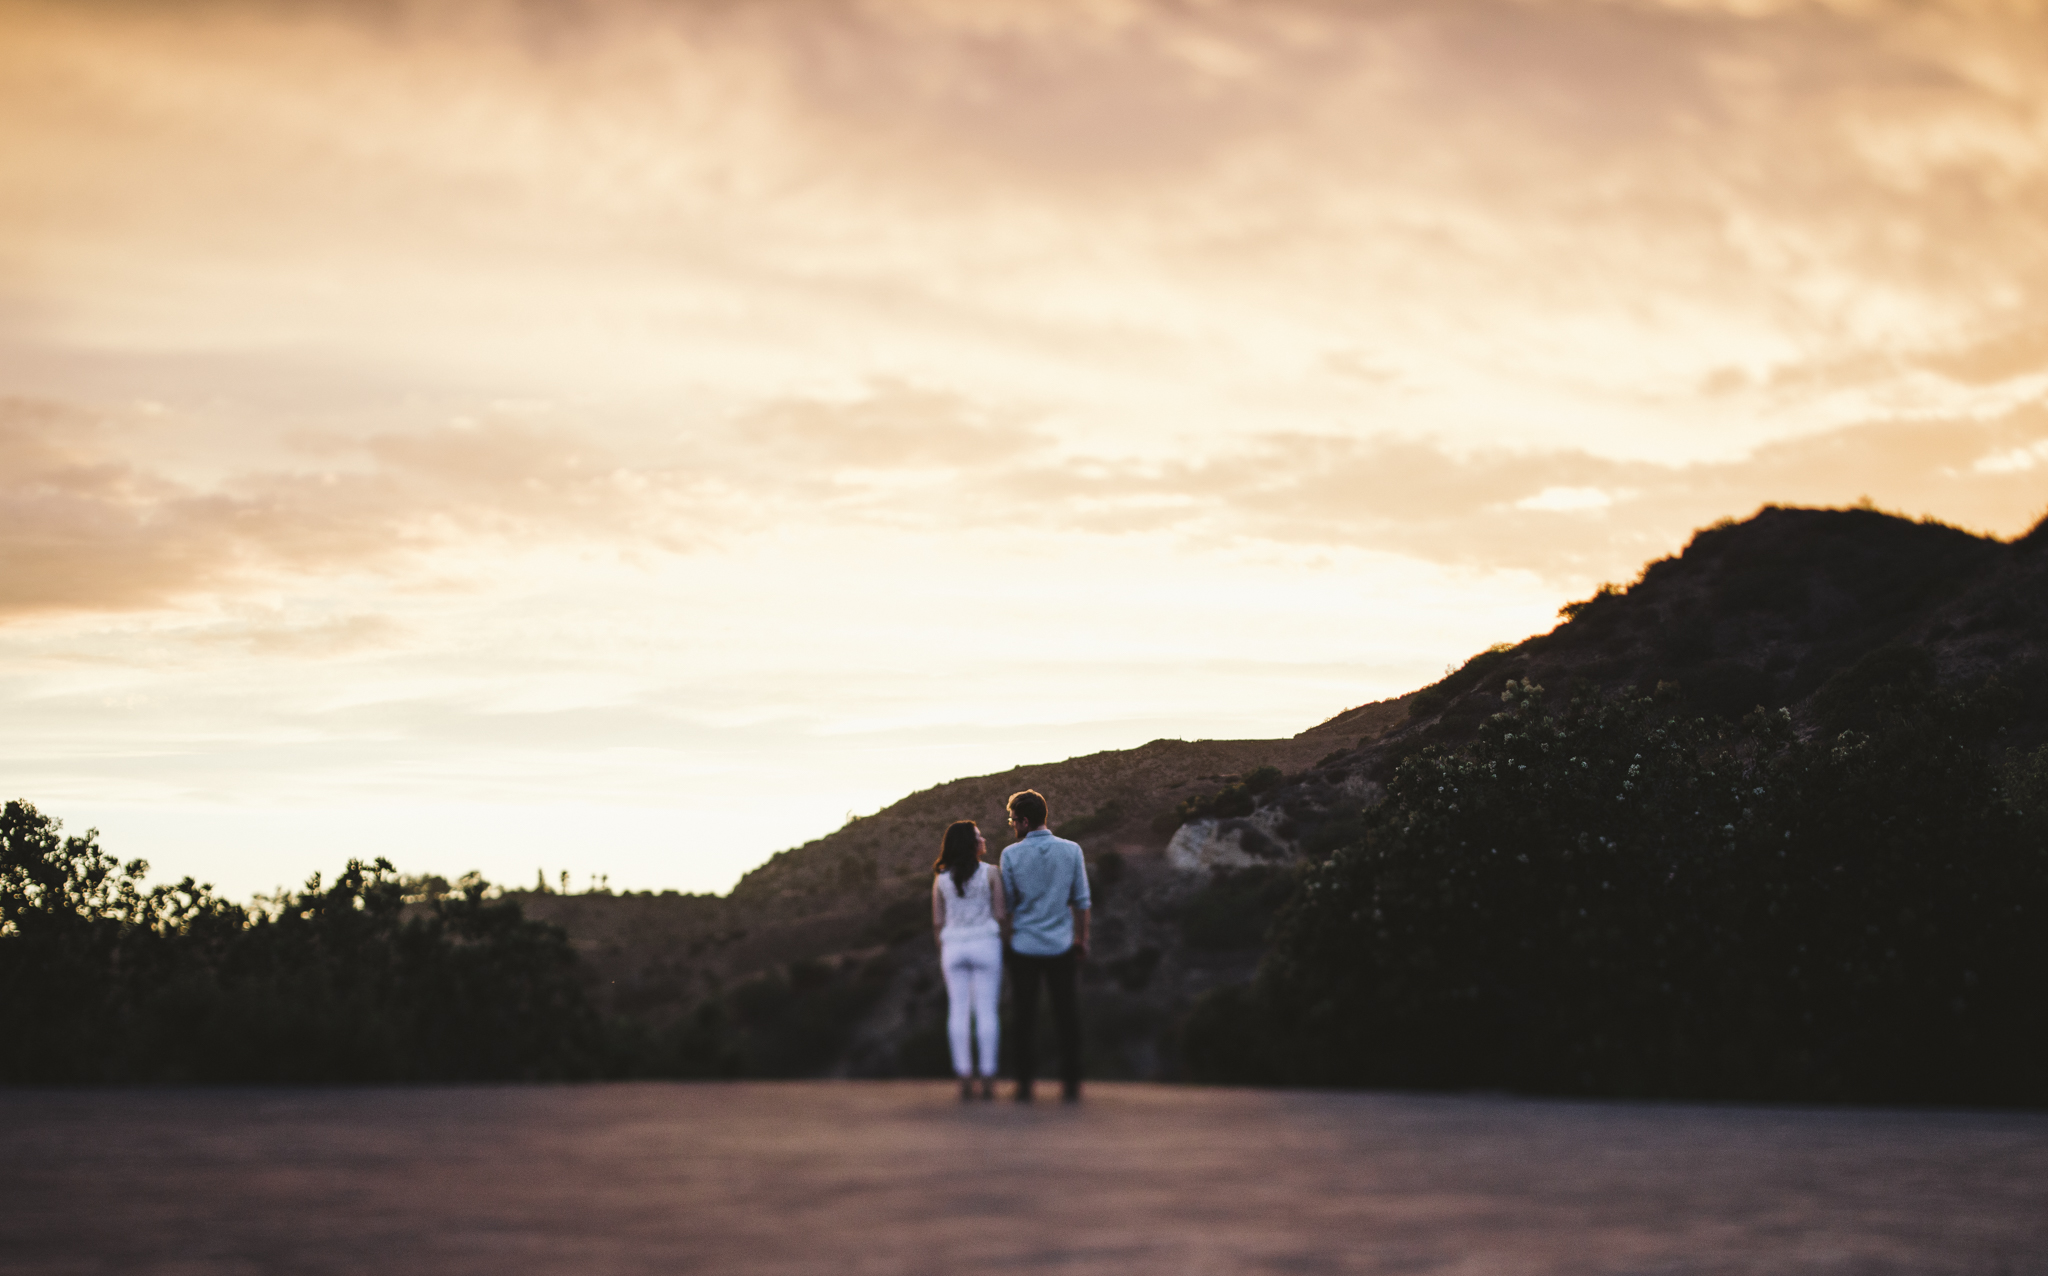 Isaiah & Taylor Photography - Los Angeles Landscape Sunset Engagement-30.jpg